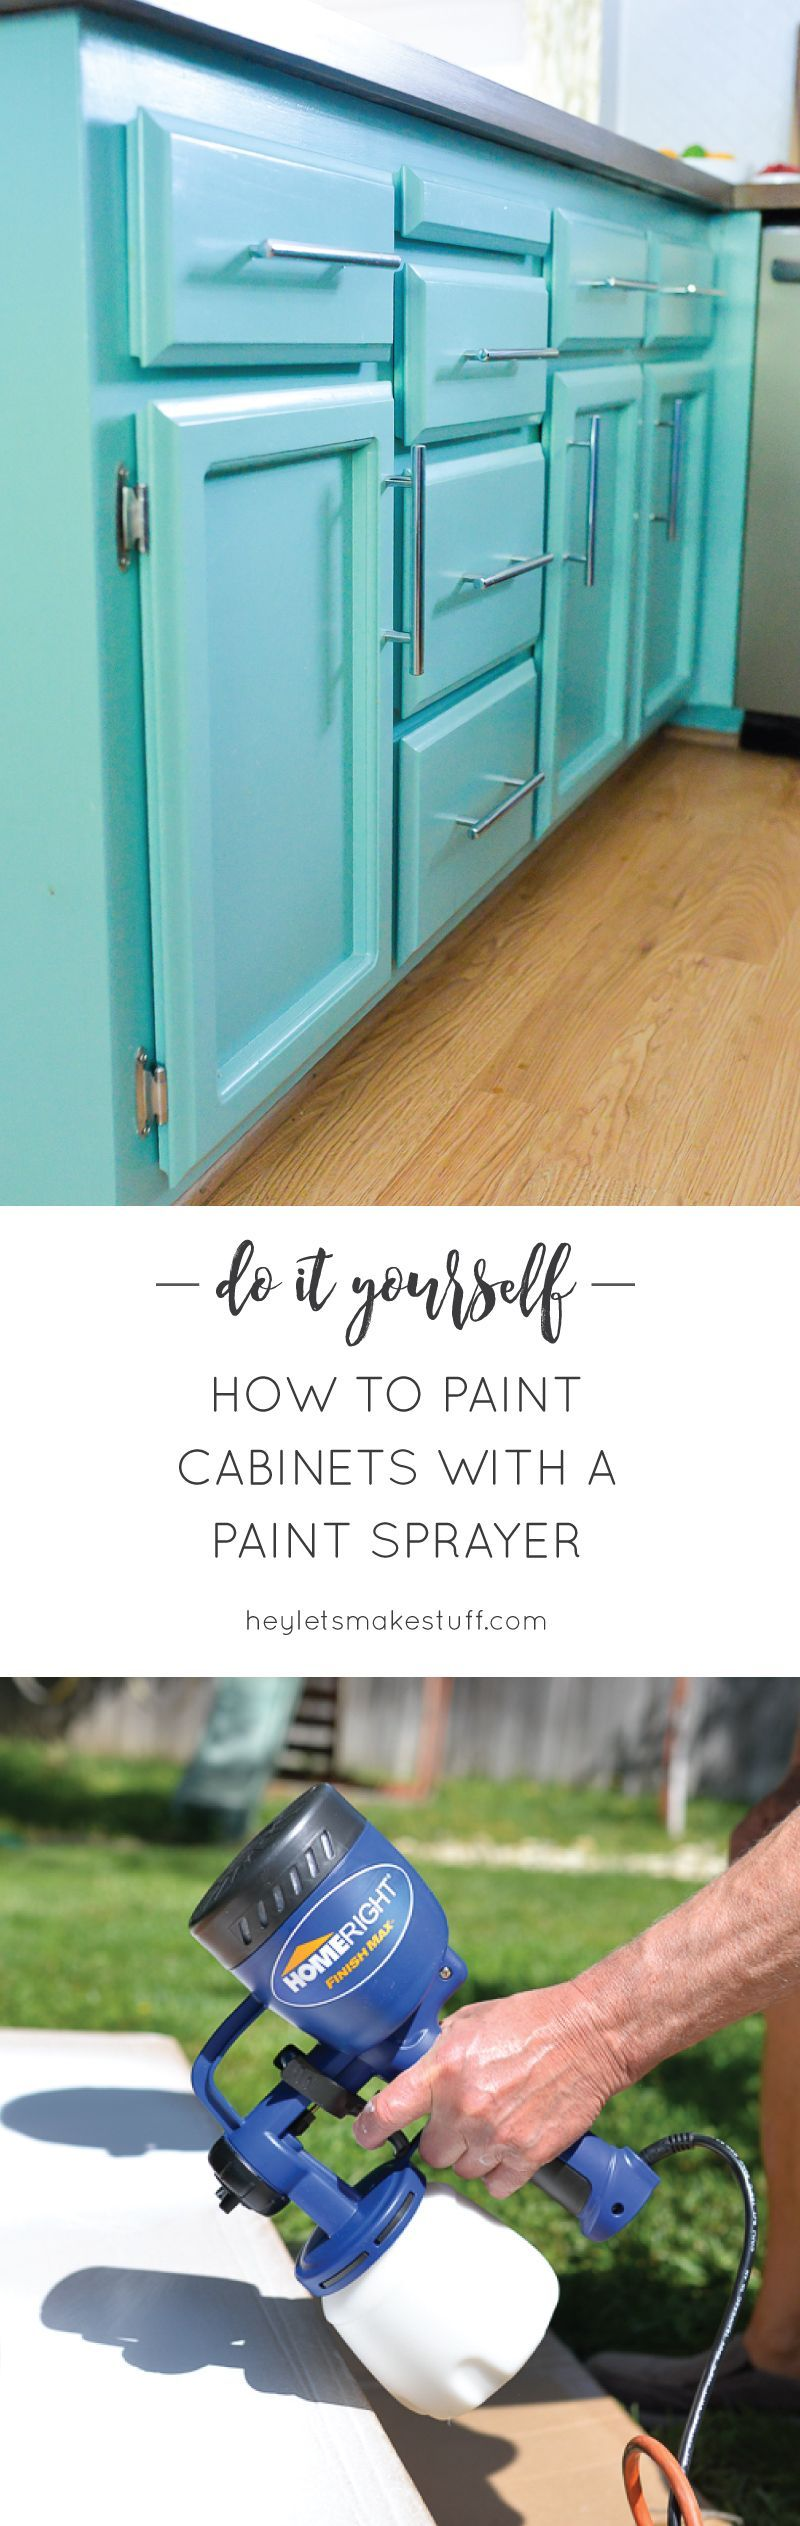 How to Paint Cabinets using Latex Paint and a Paint Sprayer